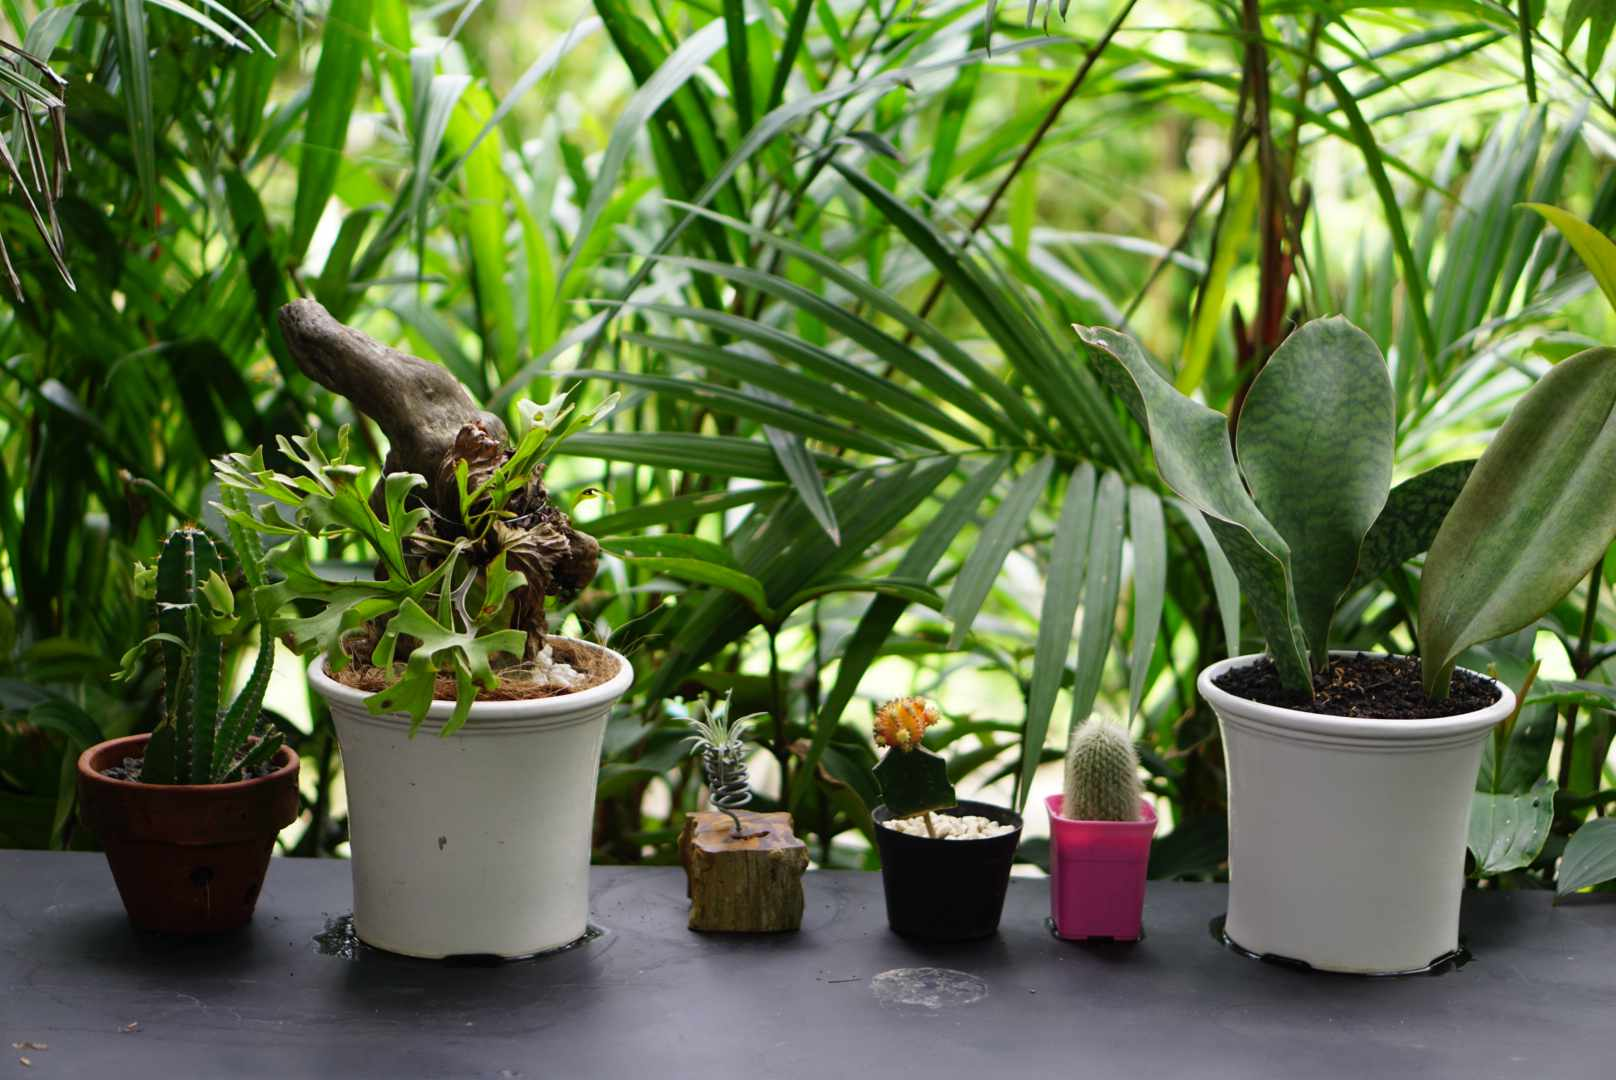 preparing a list of plants so you know what to buy